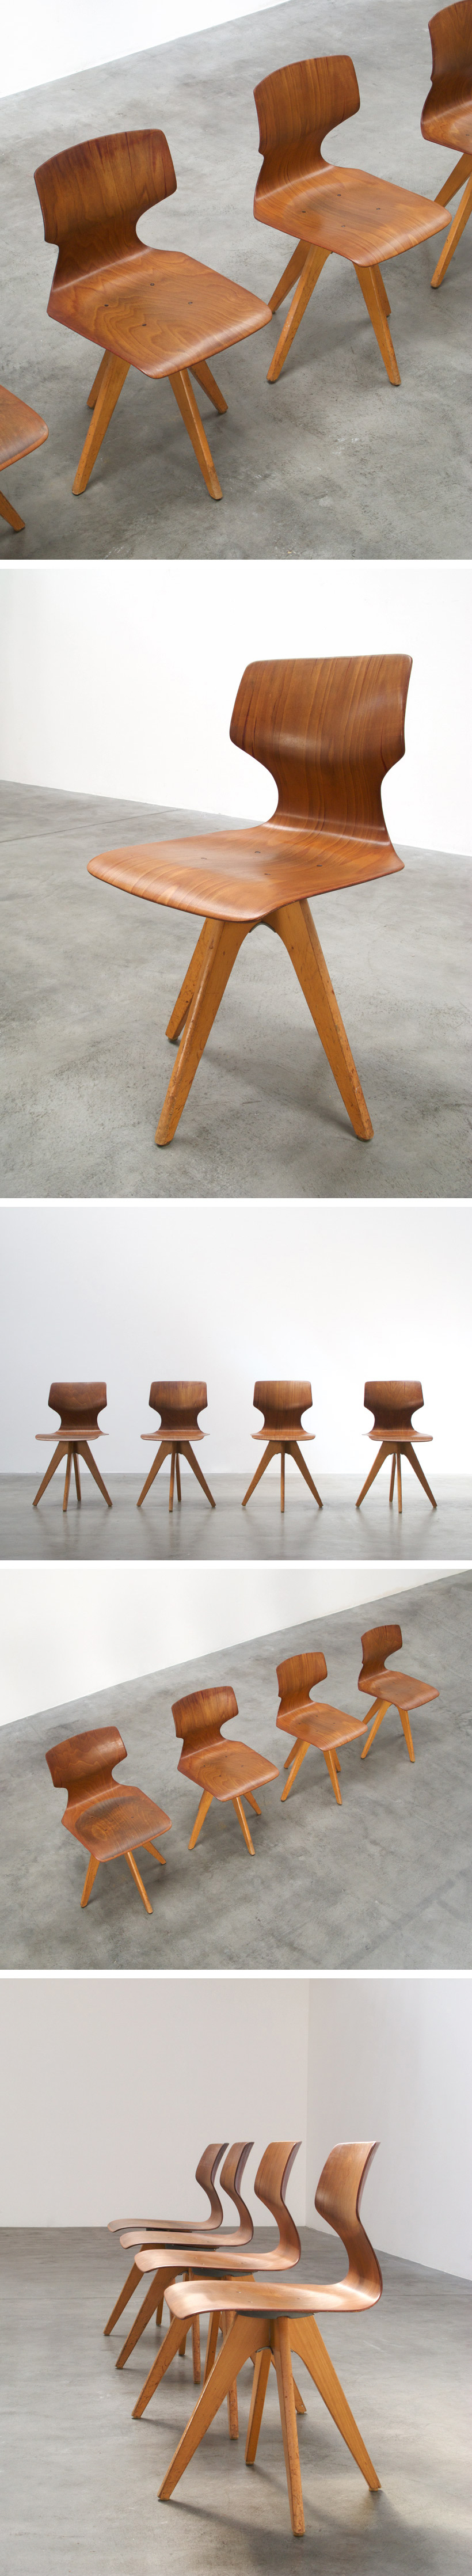 4 plywood school chairs Large